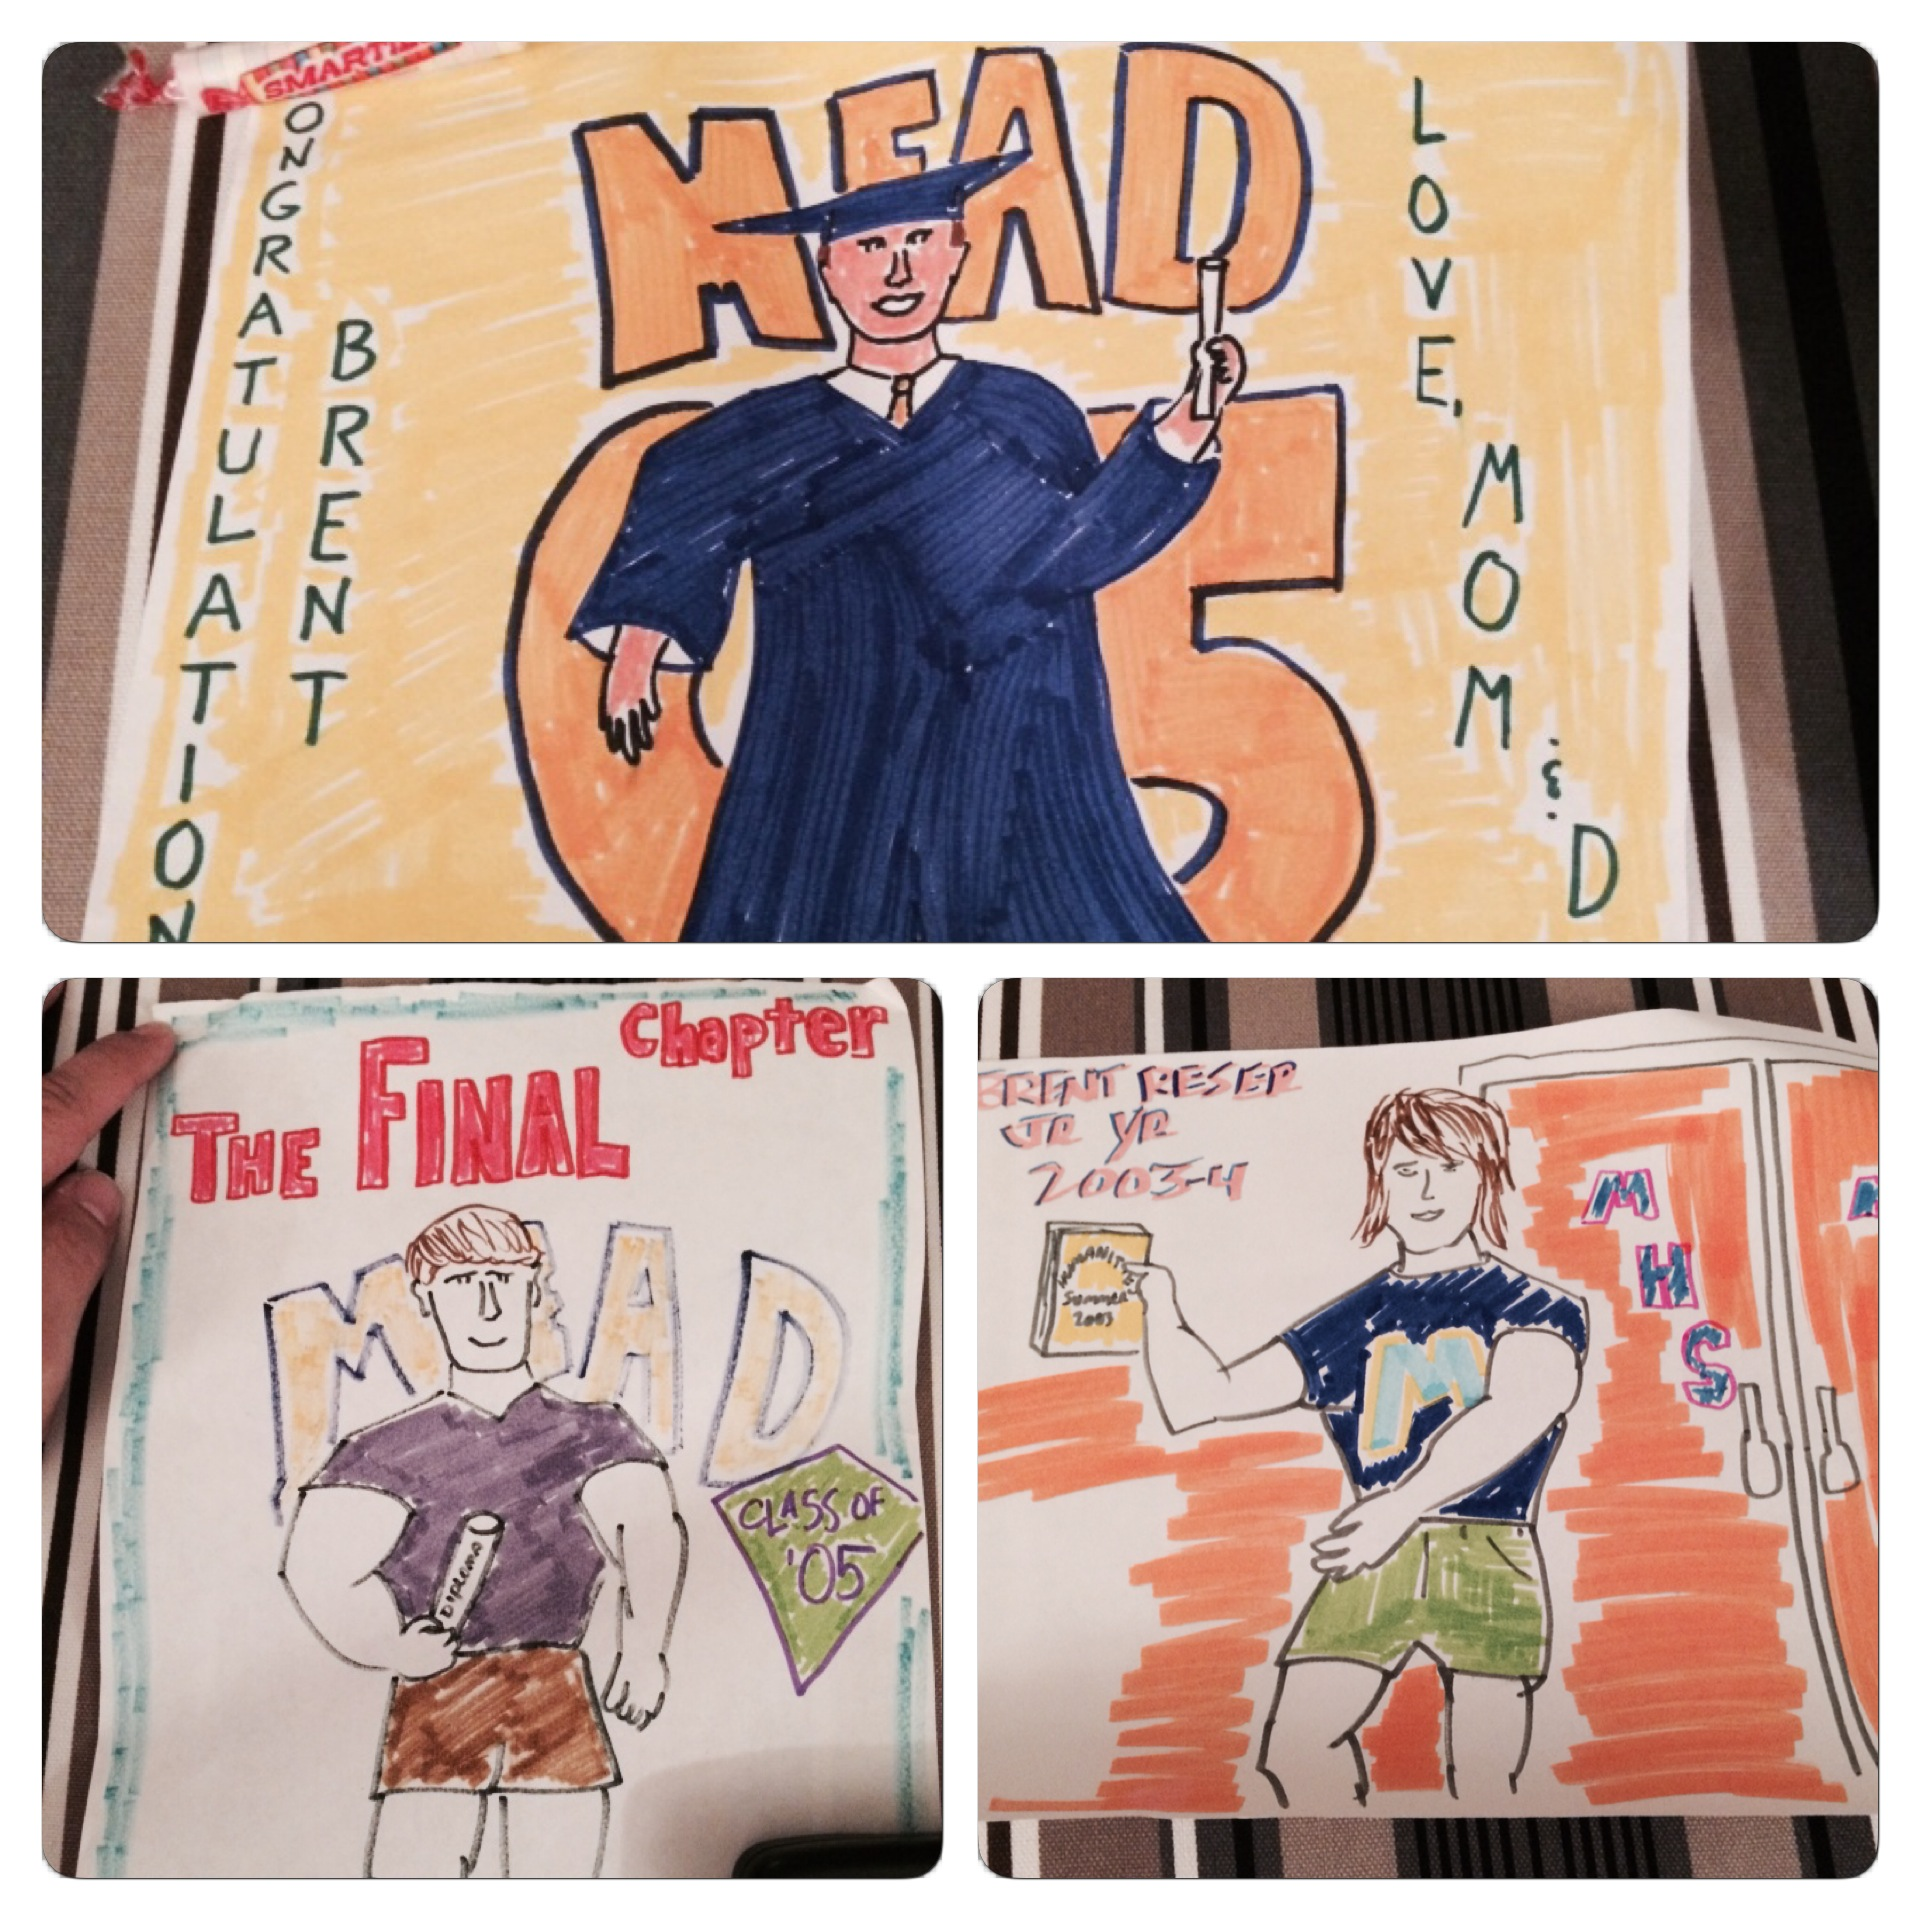 My dad had a neat tradition where he would create drawings for us on special occasions. Here is some of his work from my high school years.